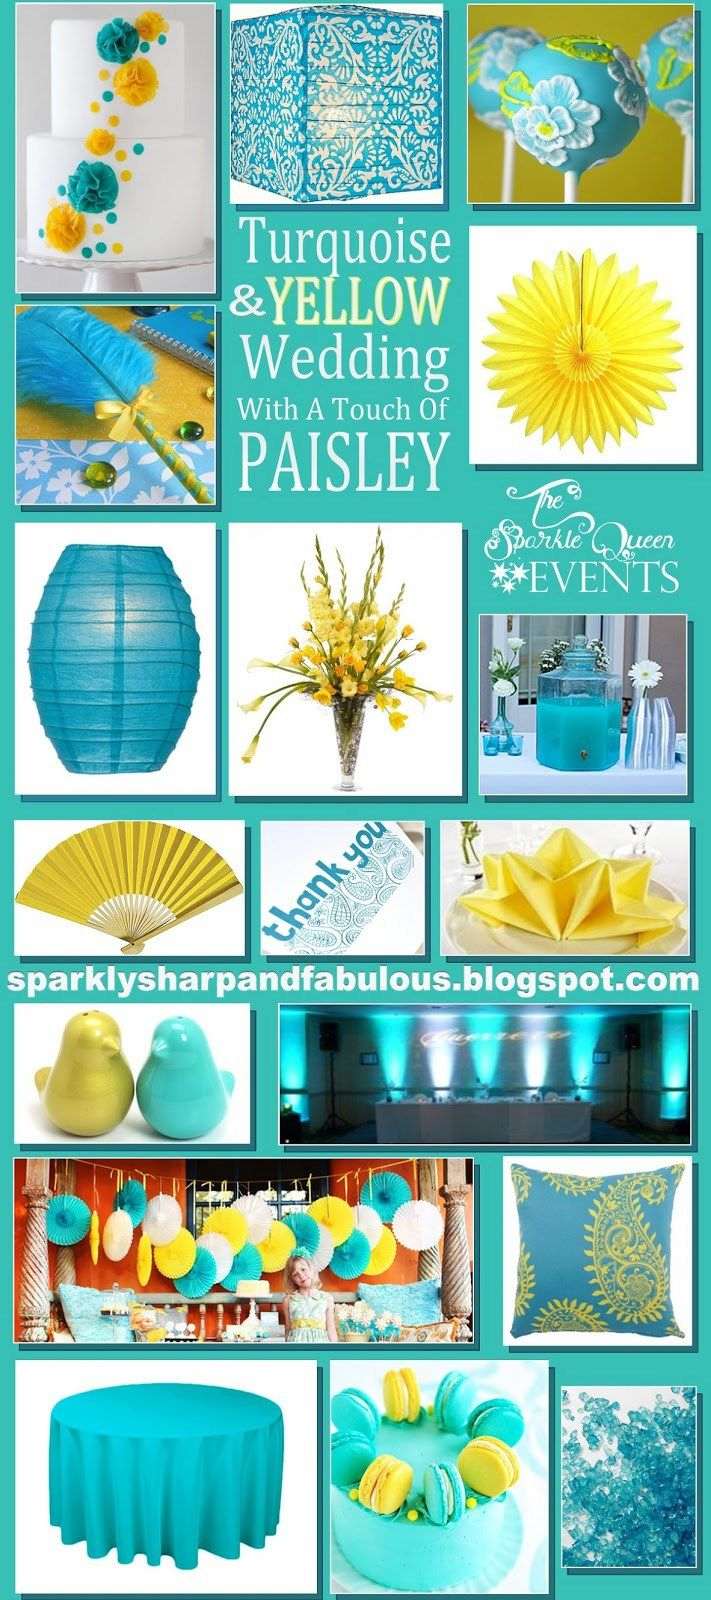 Turquoise+and+Yellow+Wedding+Idea+and+Inspiration+Board.jpg 711×1,600 pixels